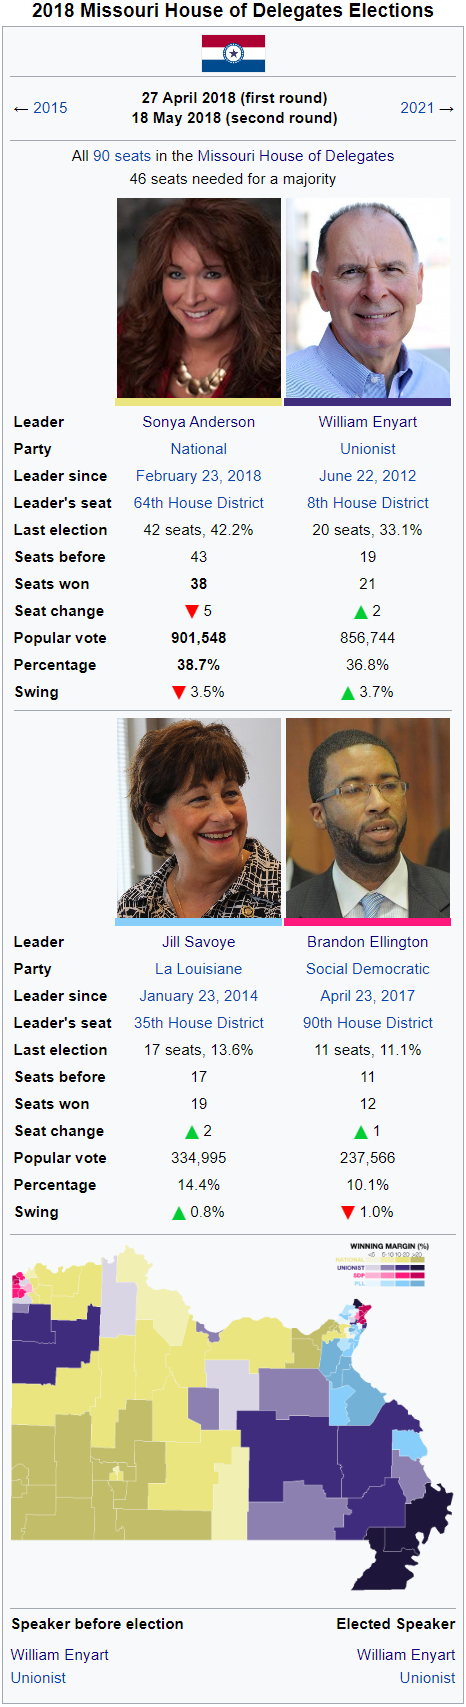 2018 Missouri House Election Wiki.png